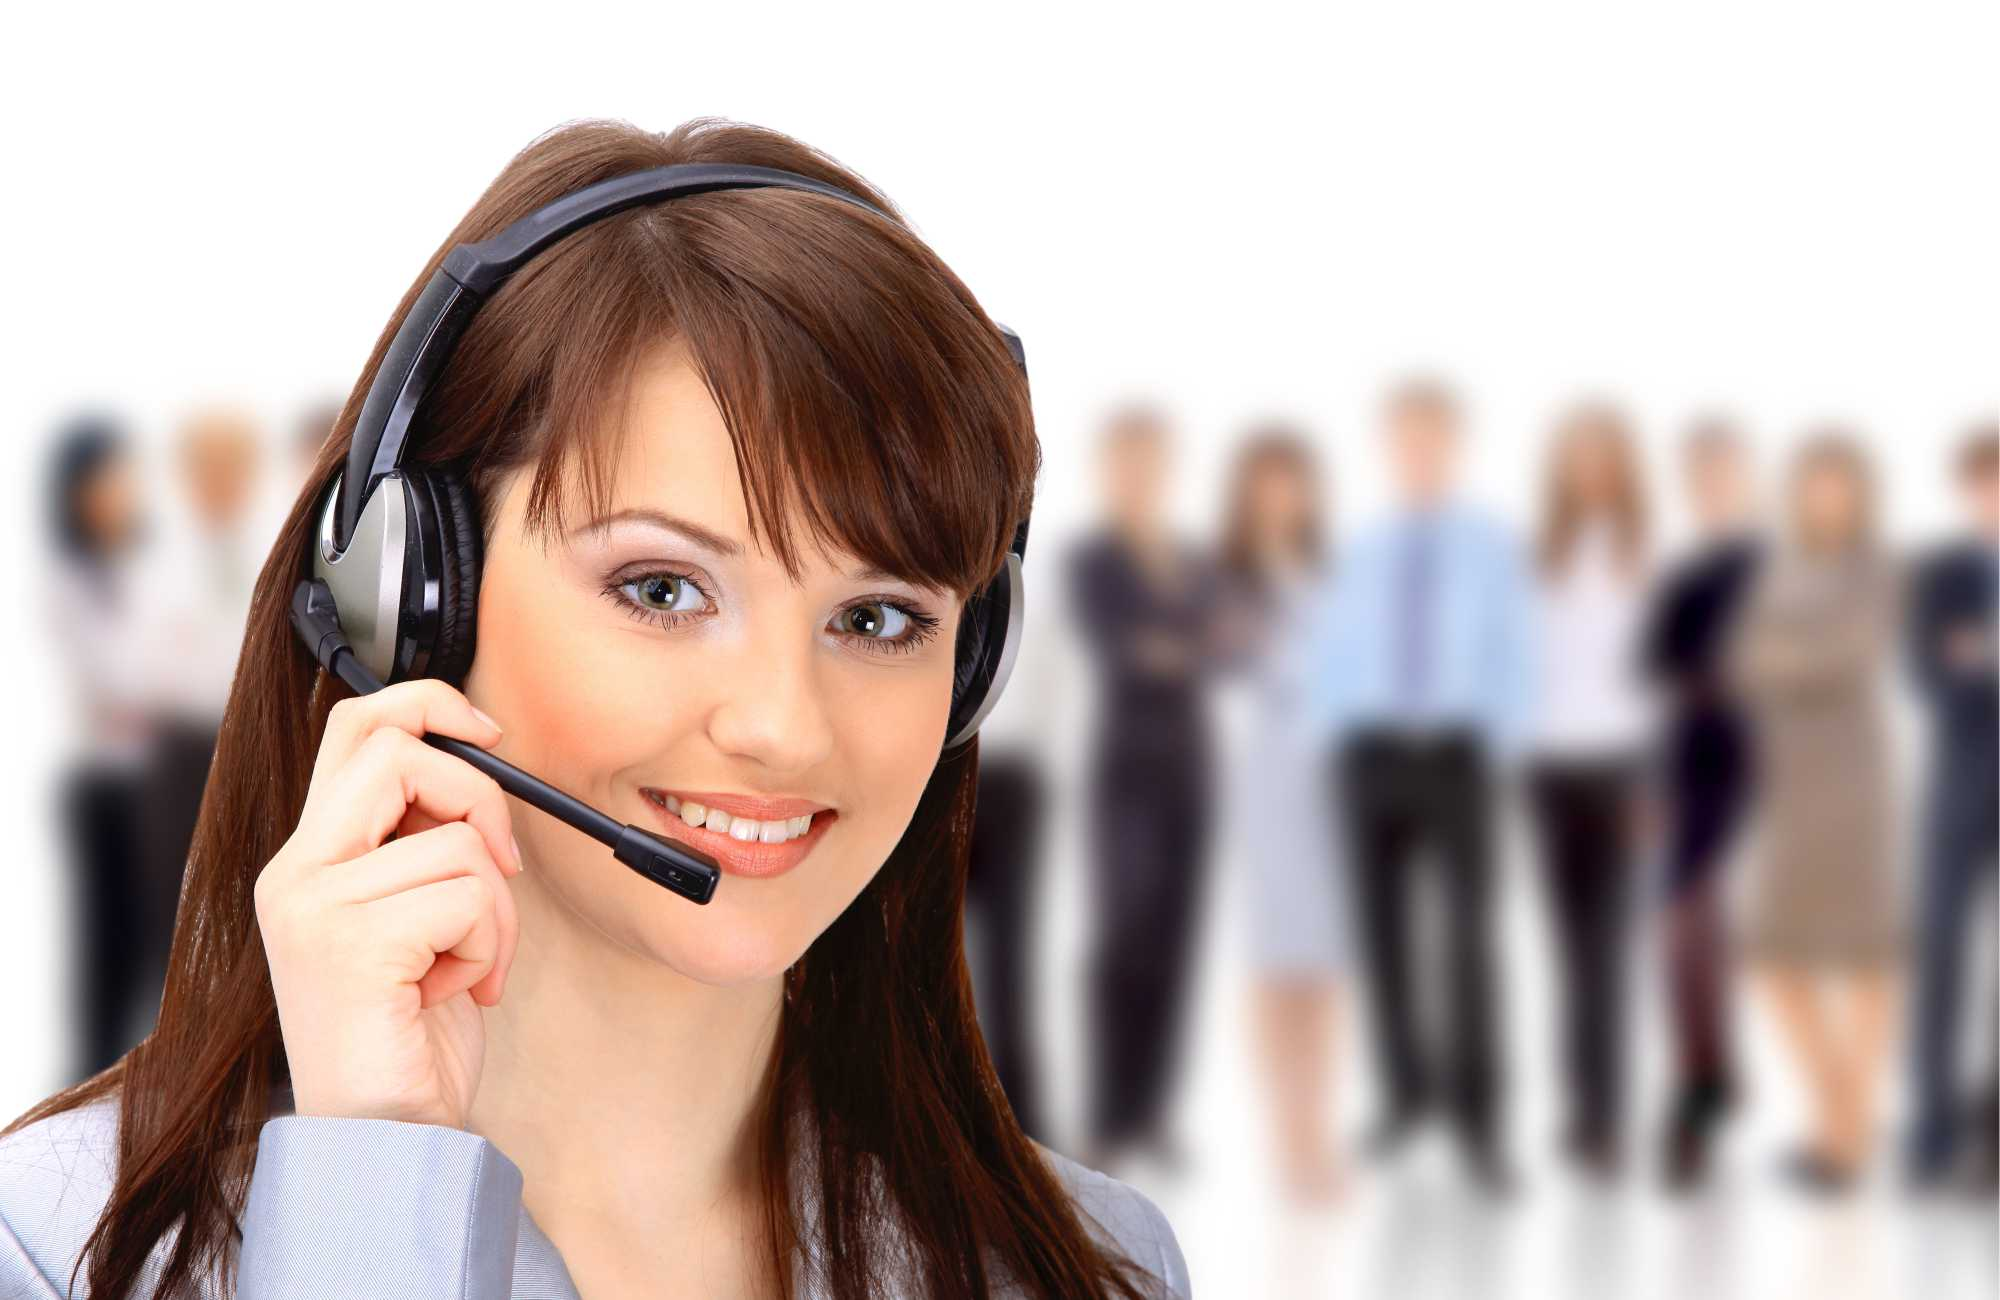 call-answering-service-phone-messaging-services-australia-hero-240418.jpg